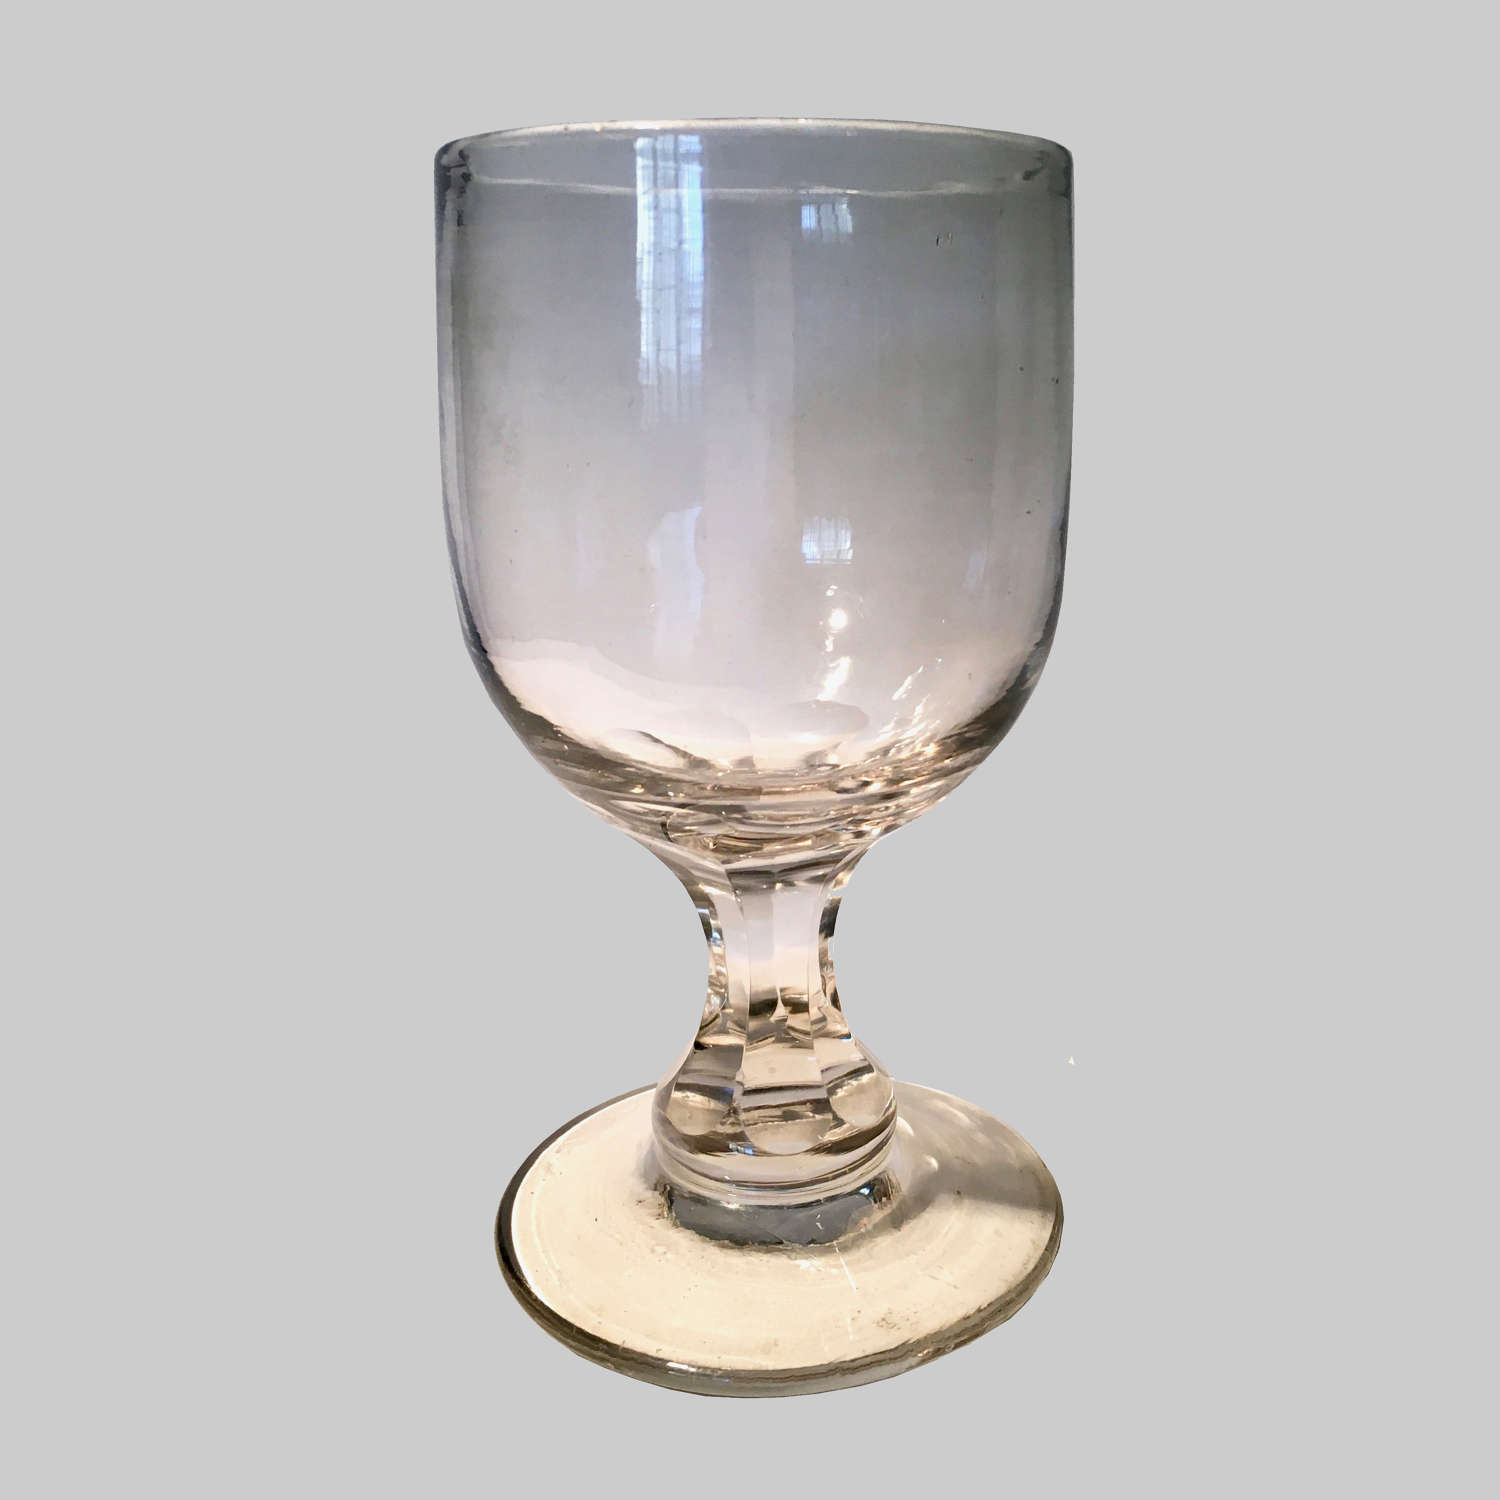 Antique wine goblet